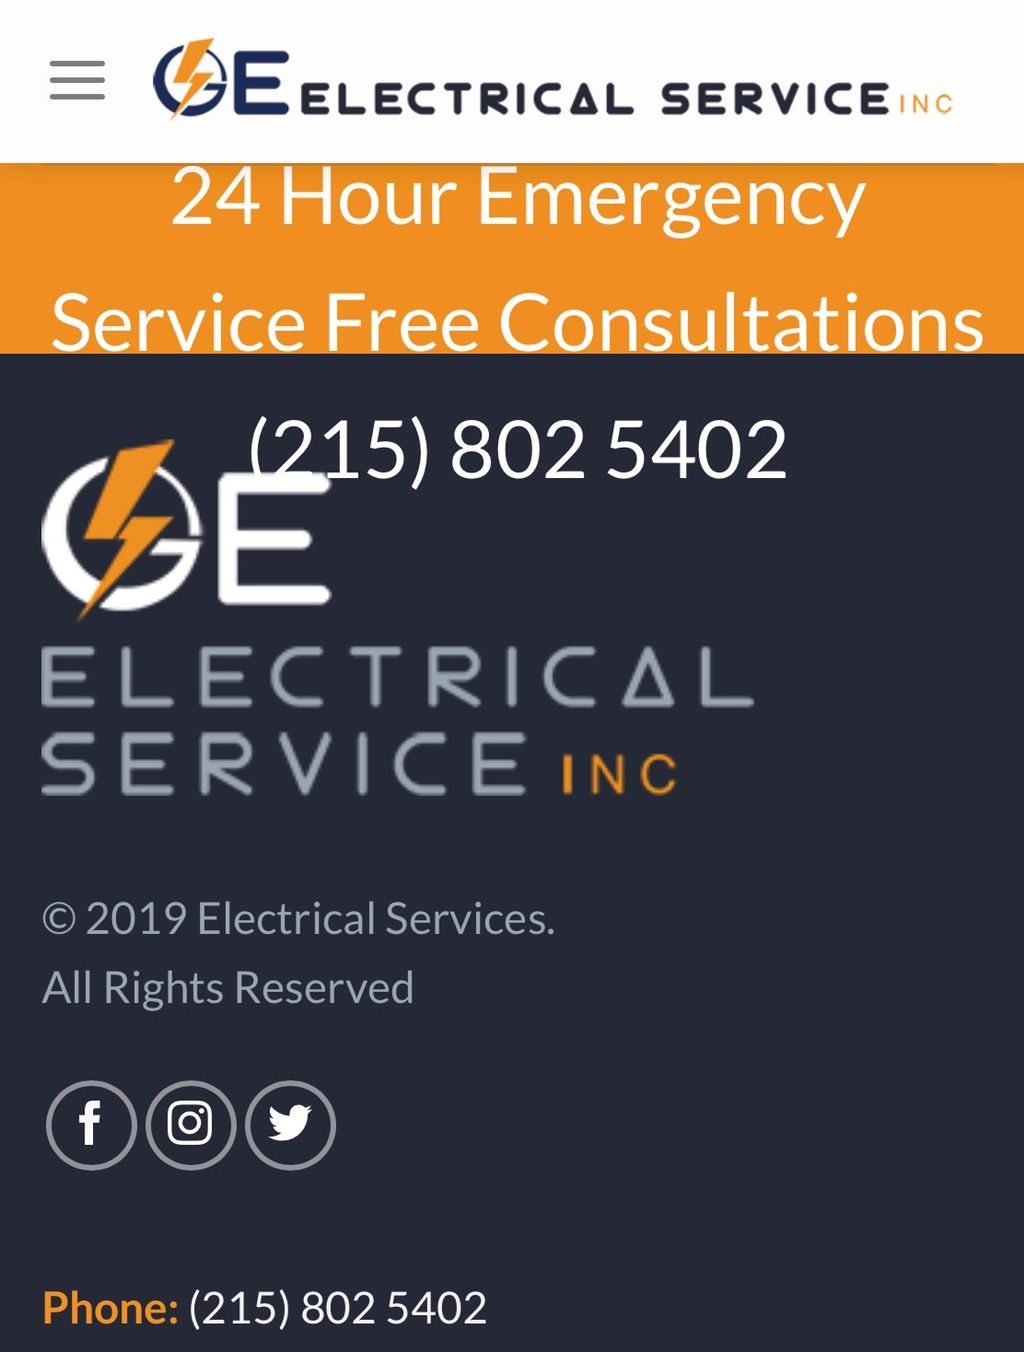 GE ELECTRICAL SERVICES INC